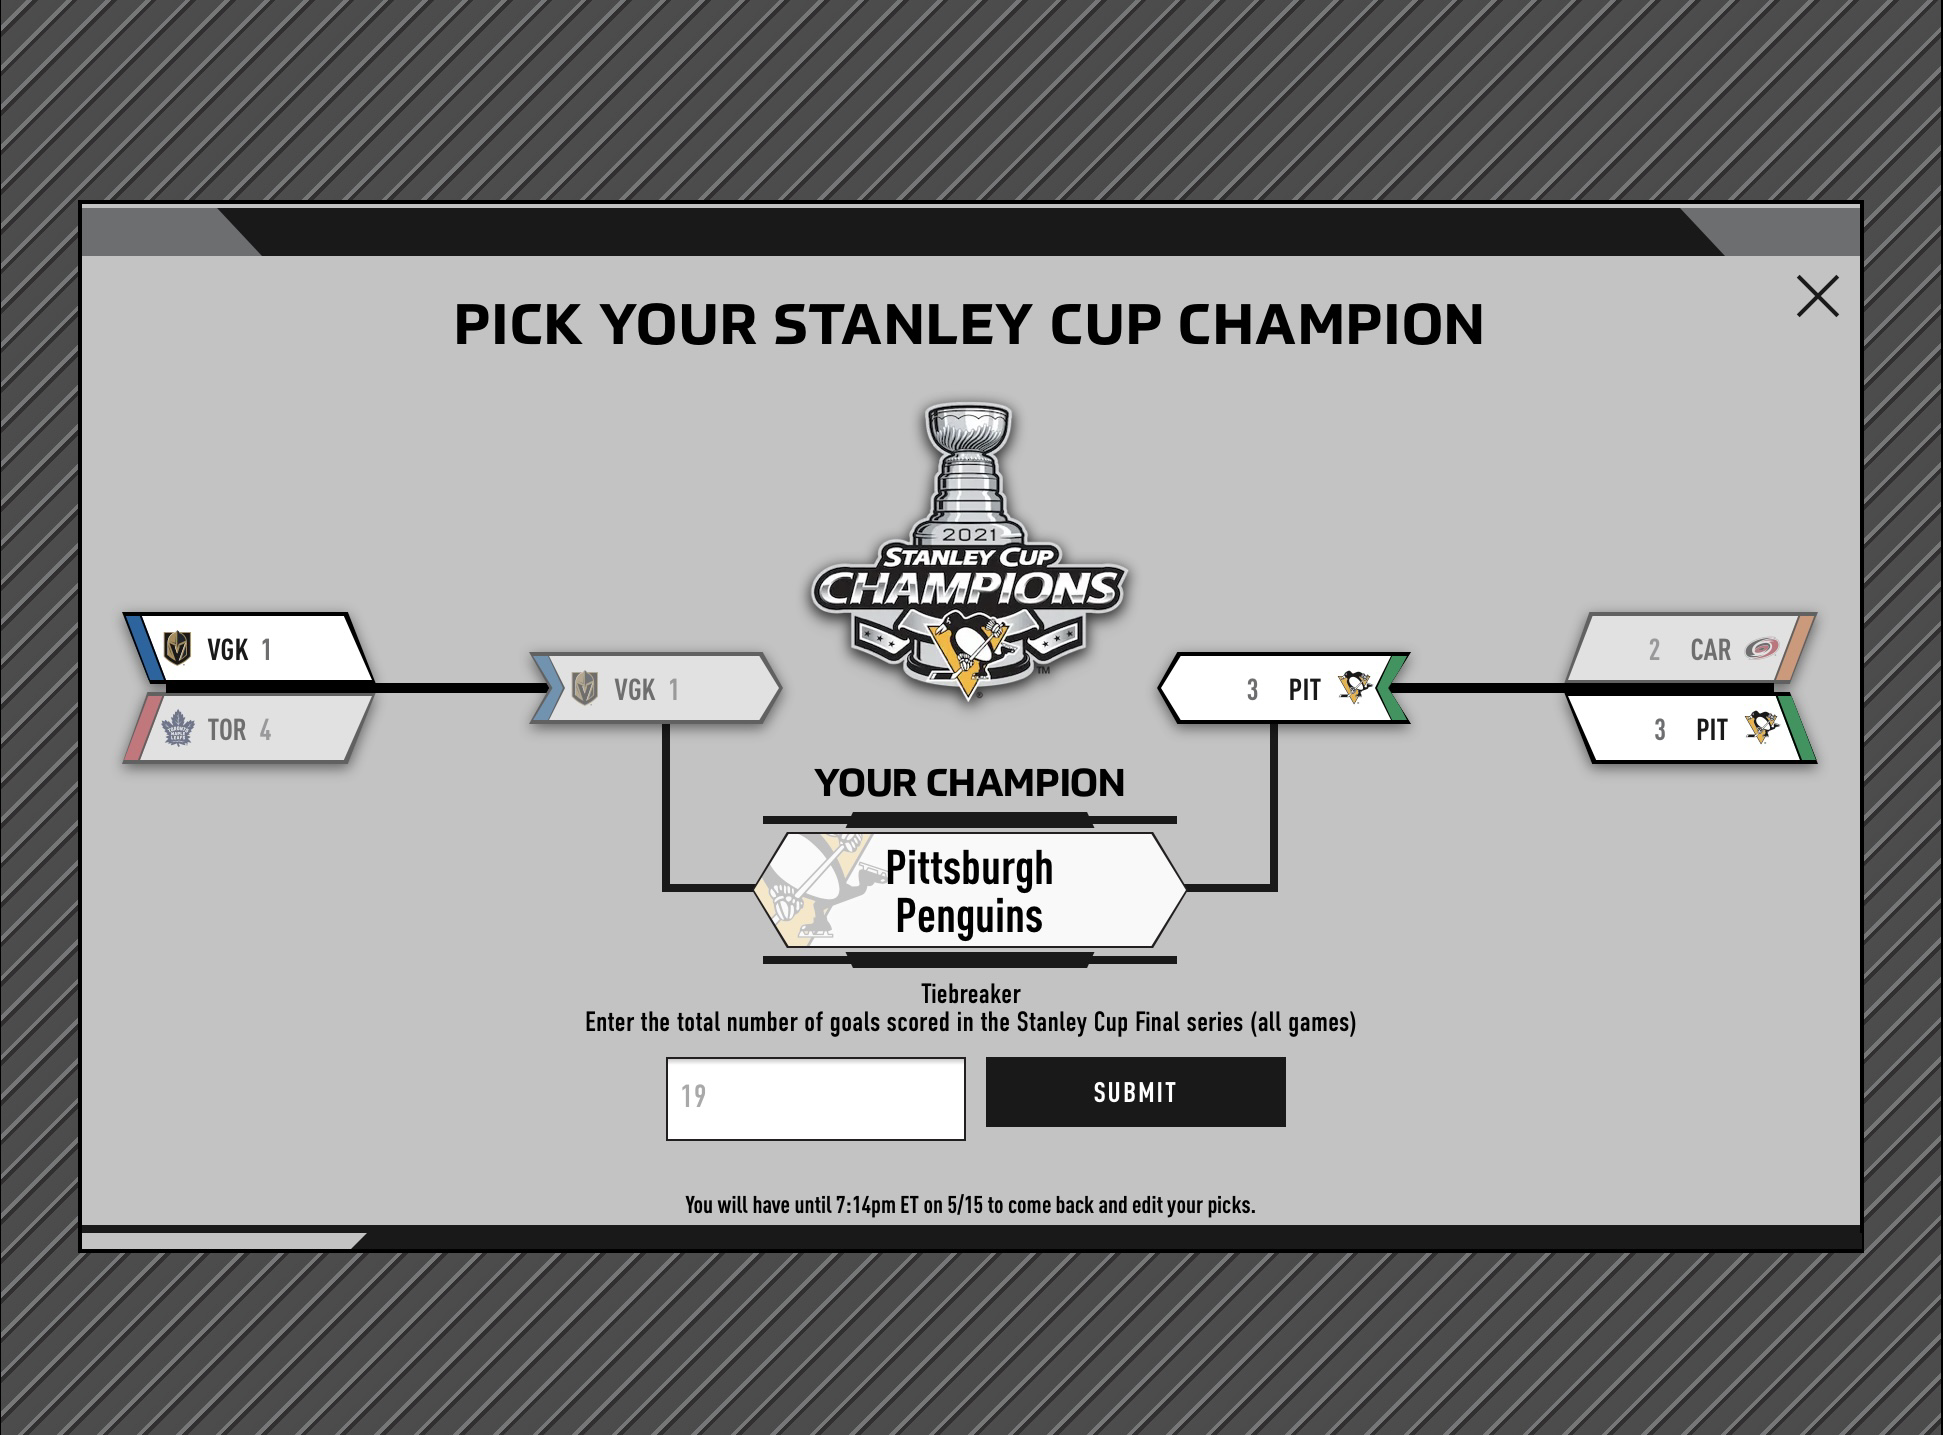 Stanley Cup final bracket showing the Penguins defeating the Golden Knights in the final.